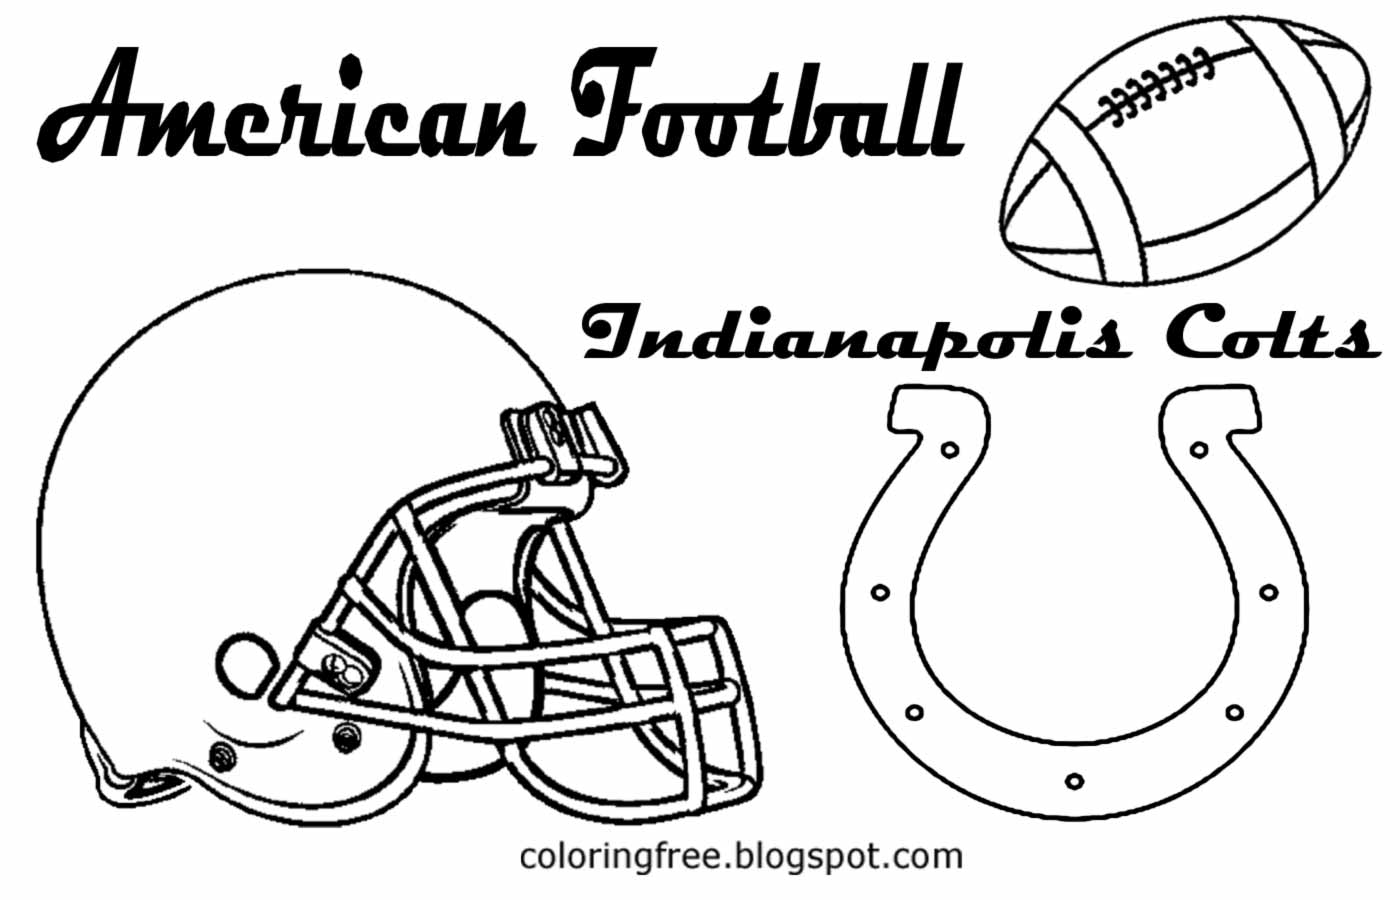 Uncategorized Colts Coloring Pages free coloring pages printable pictures to color kids drawing ideas wild horse indianapolis colts south american football for children us sport prints